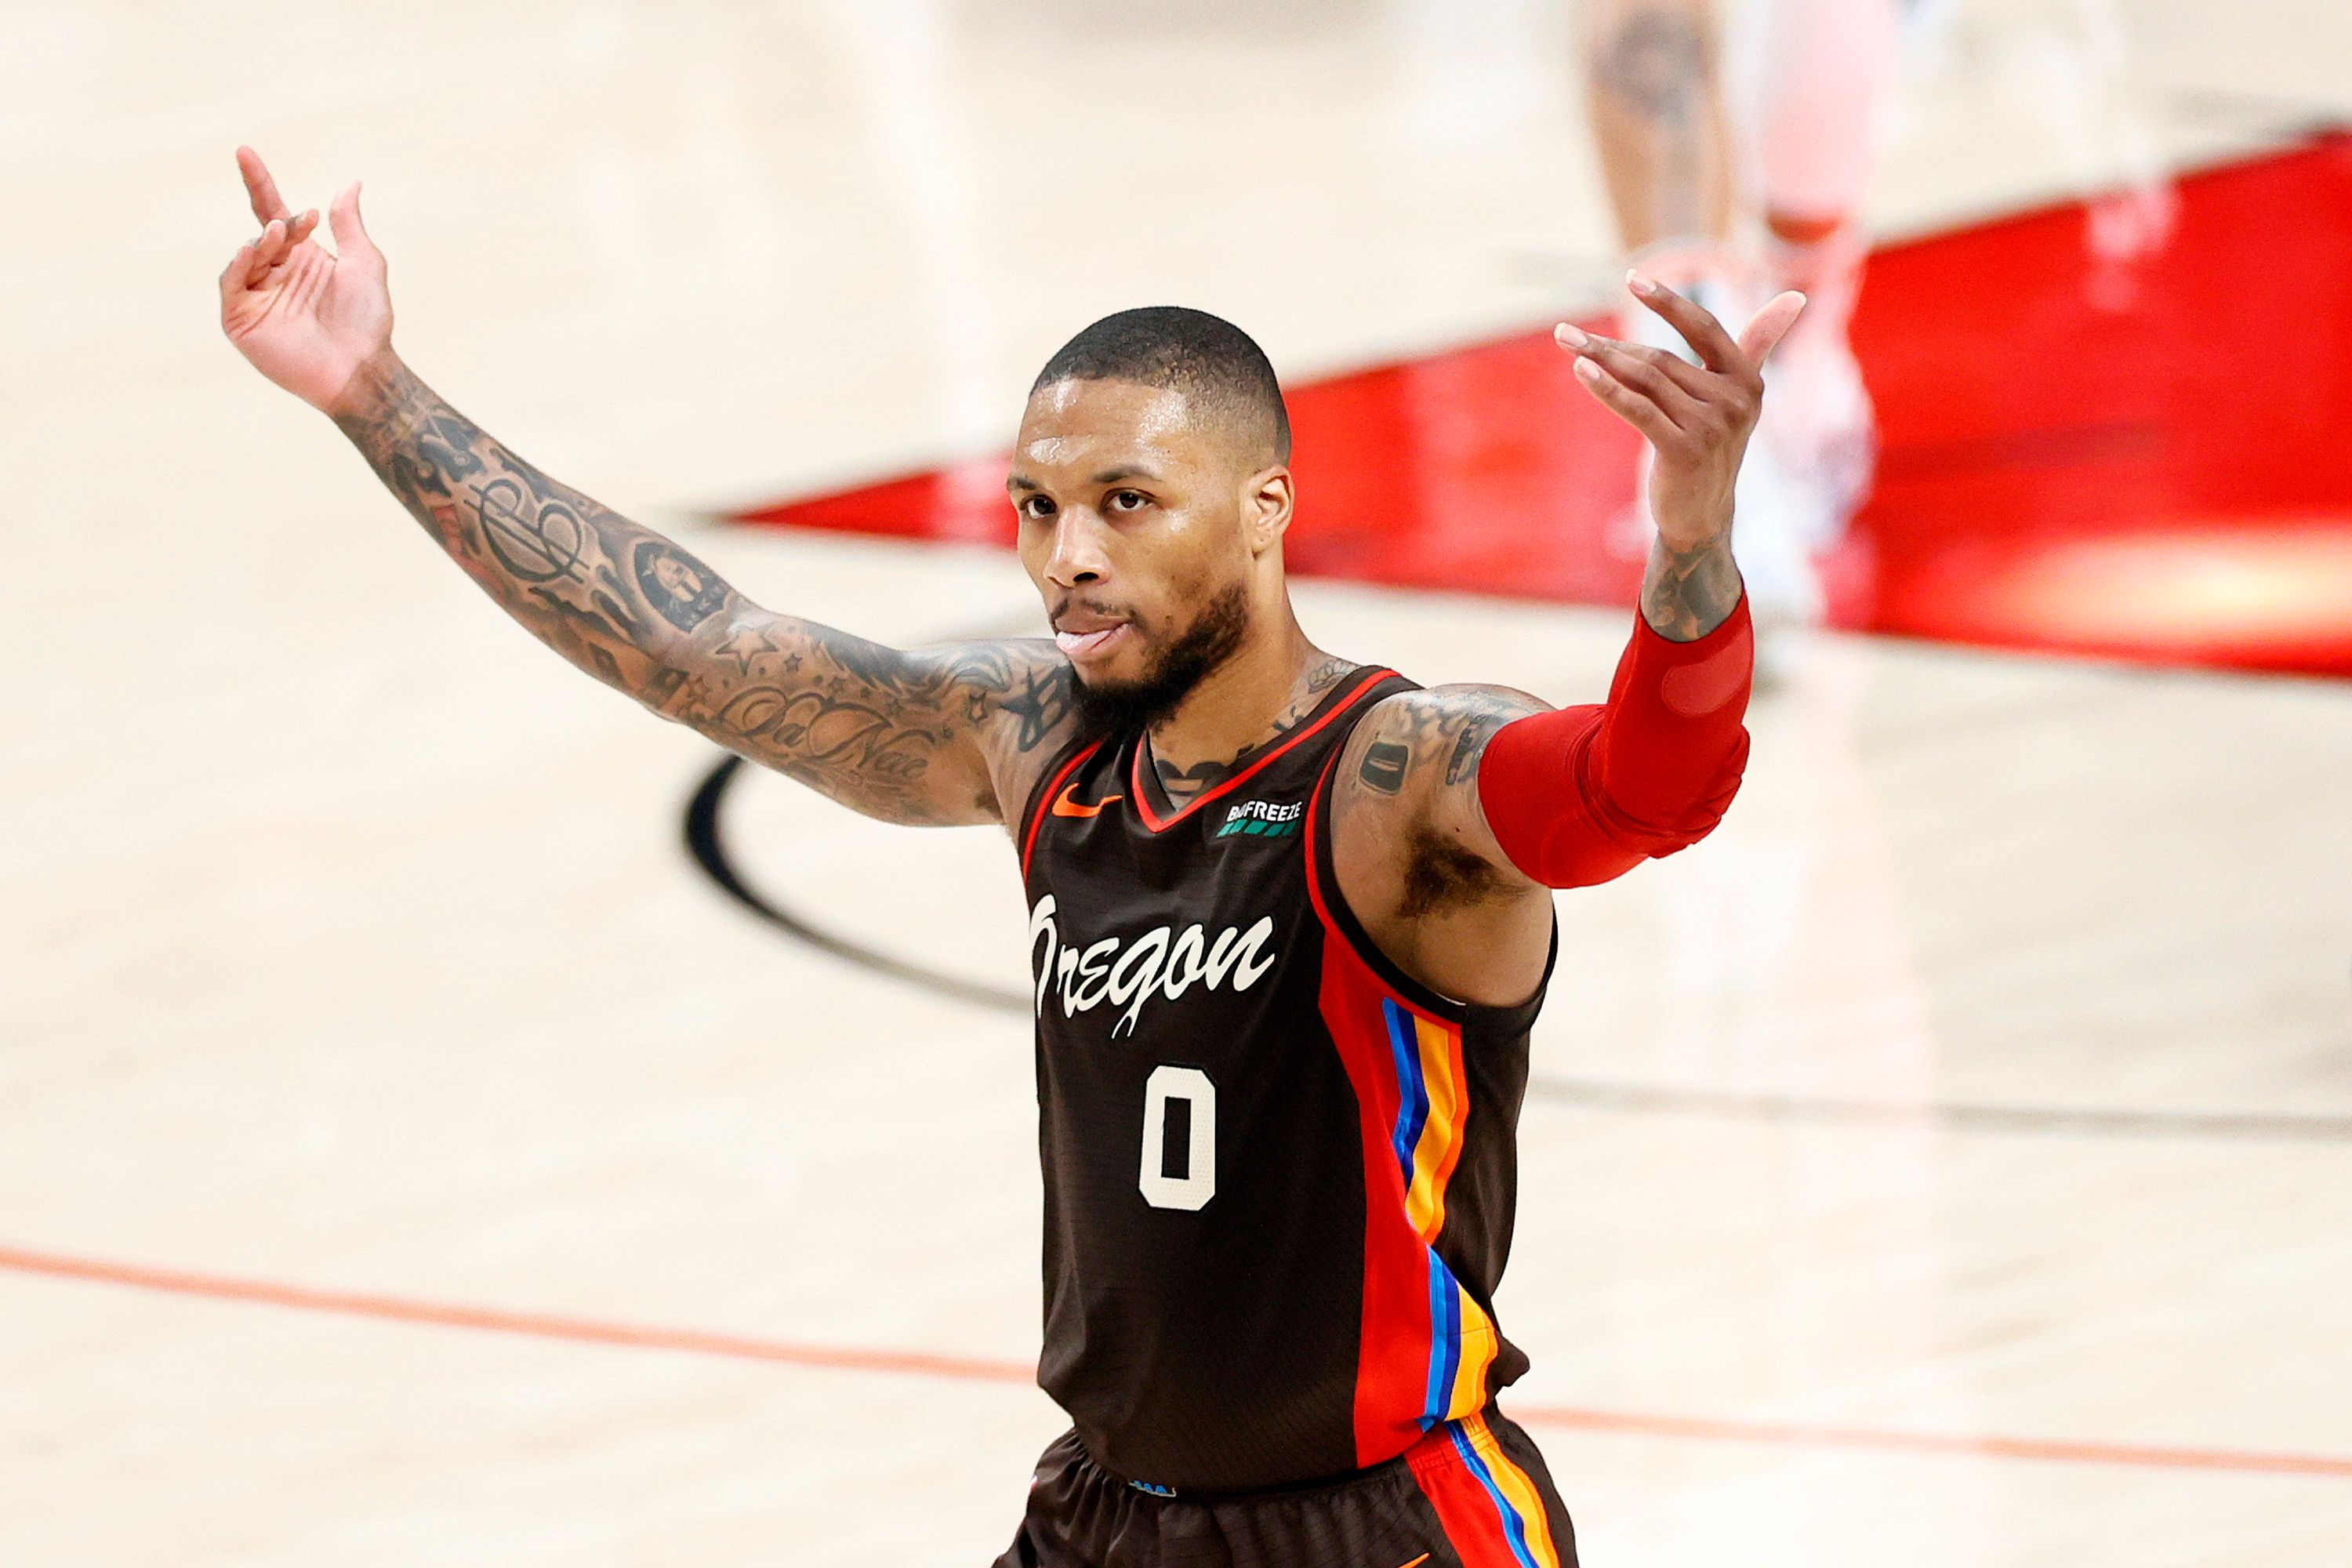 Damian Lillard requesting for a louder cheer